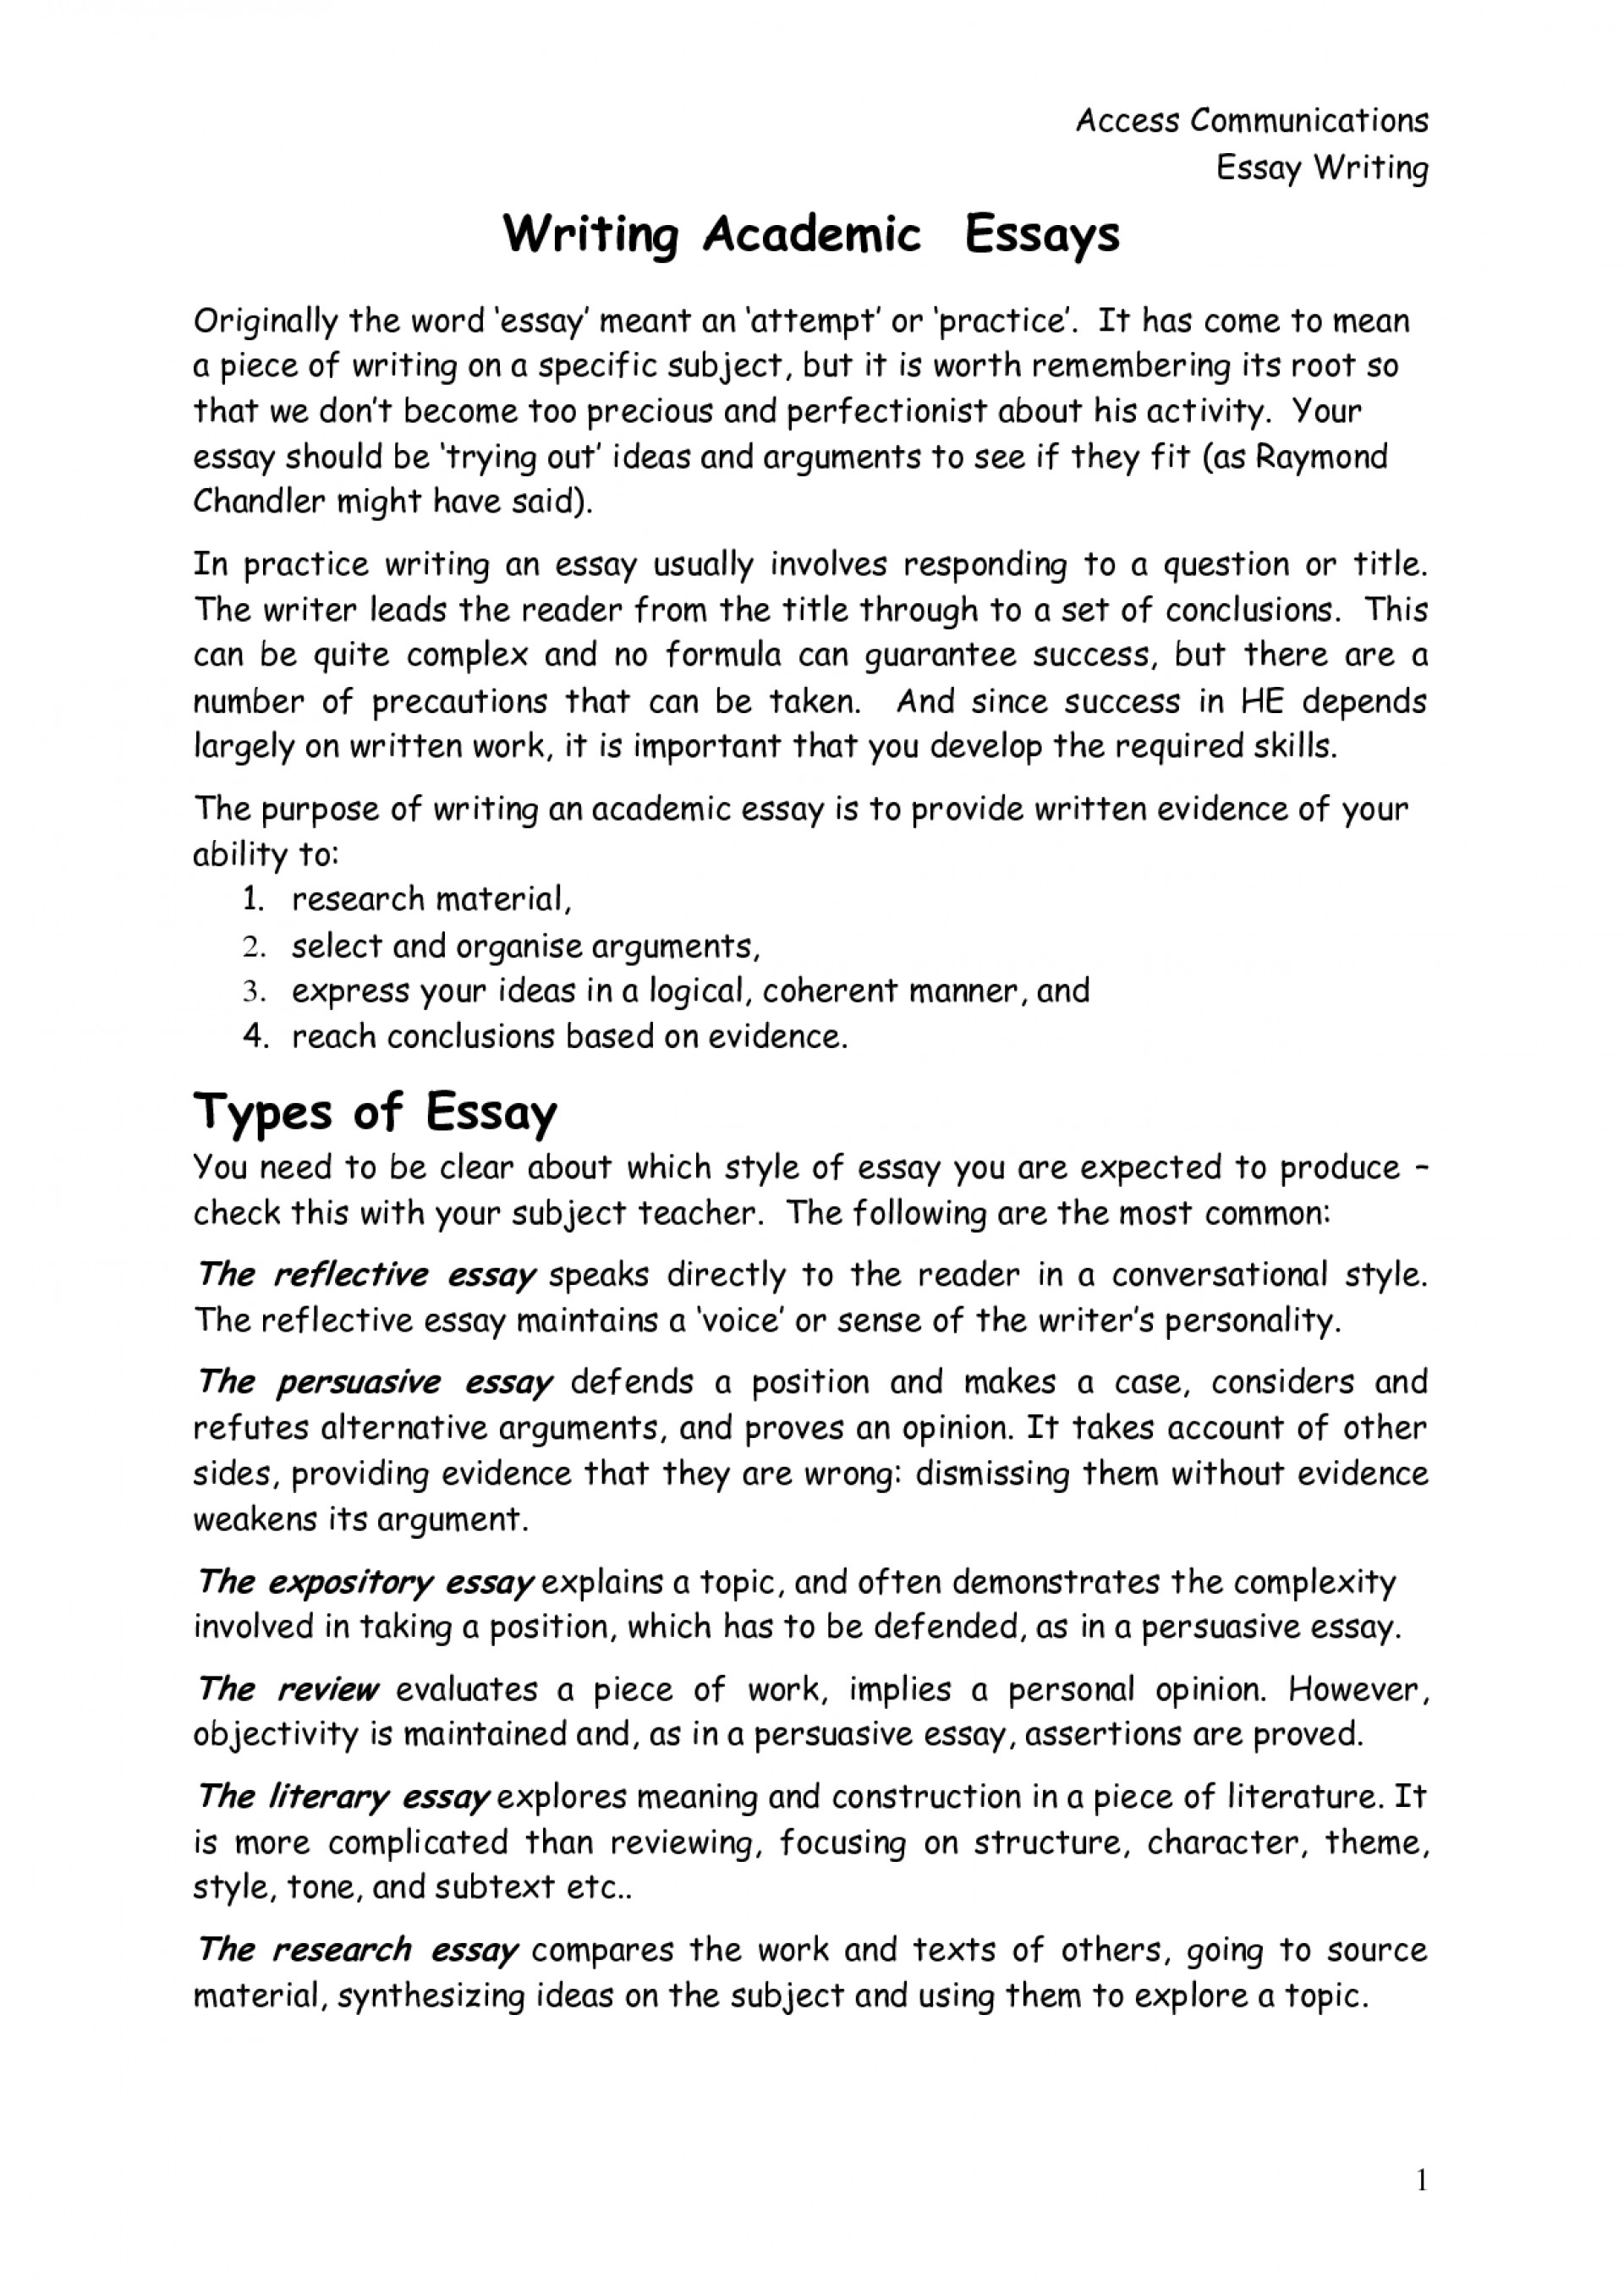 019 Write My Essay For Me Example Surprising Me.org Free Online Uk 1920